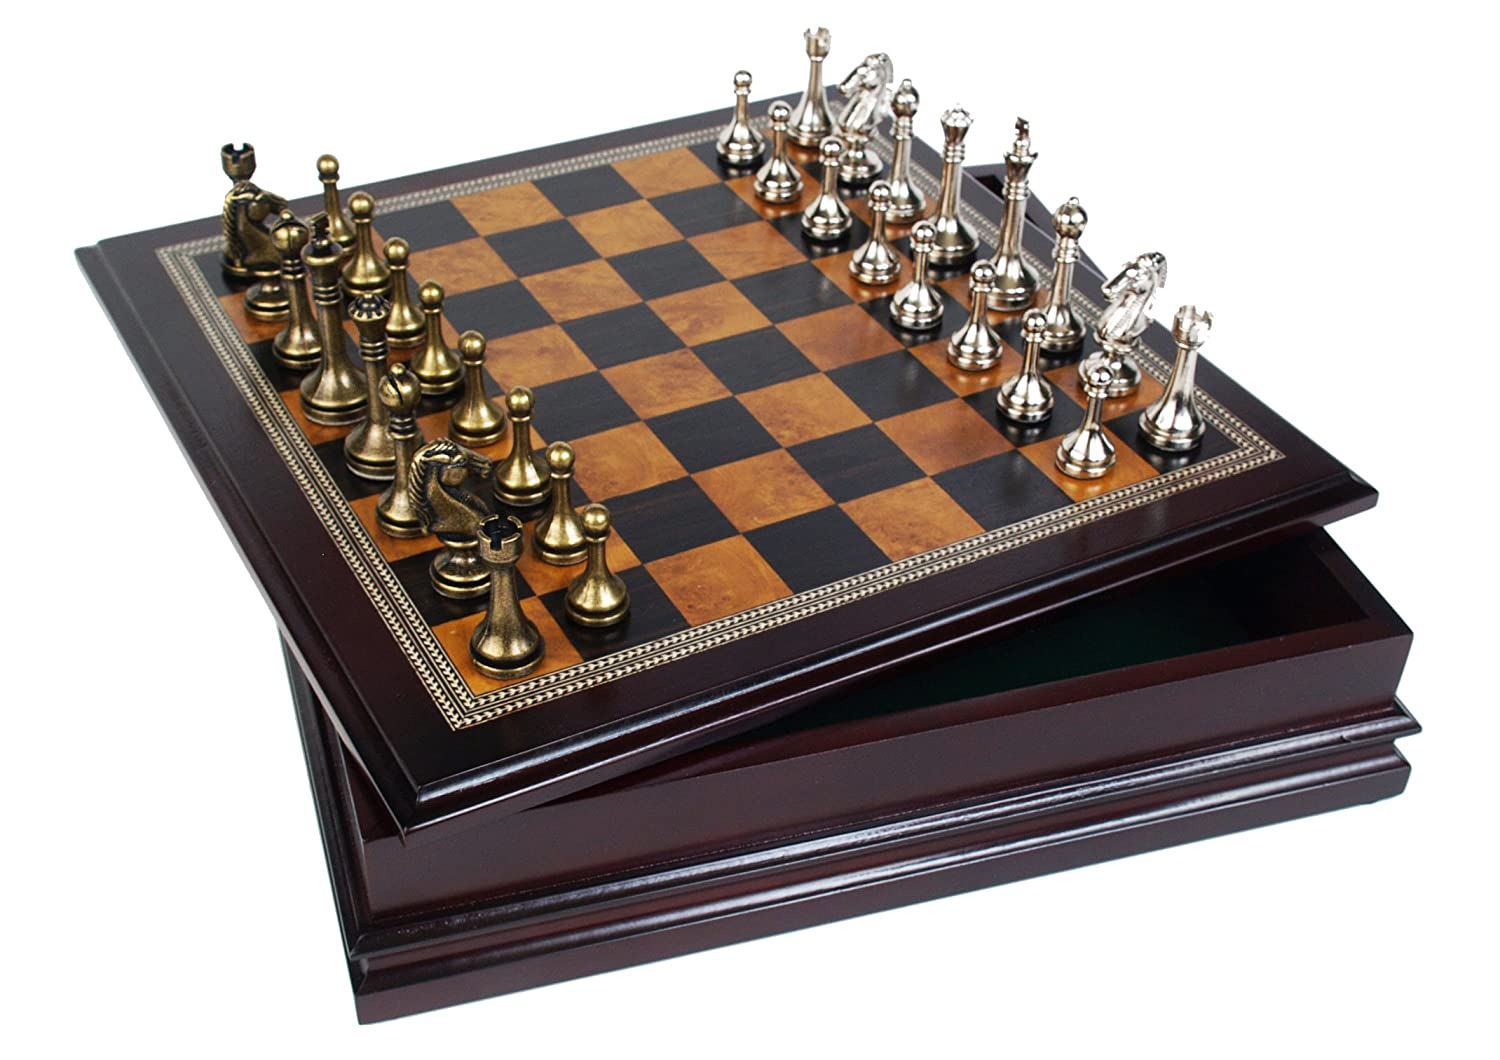 Amazoncom Metal Chess Set With Deluxe Wood Board and Storage 25